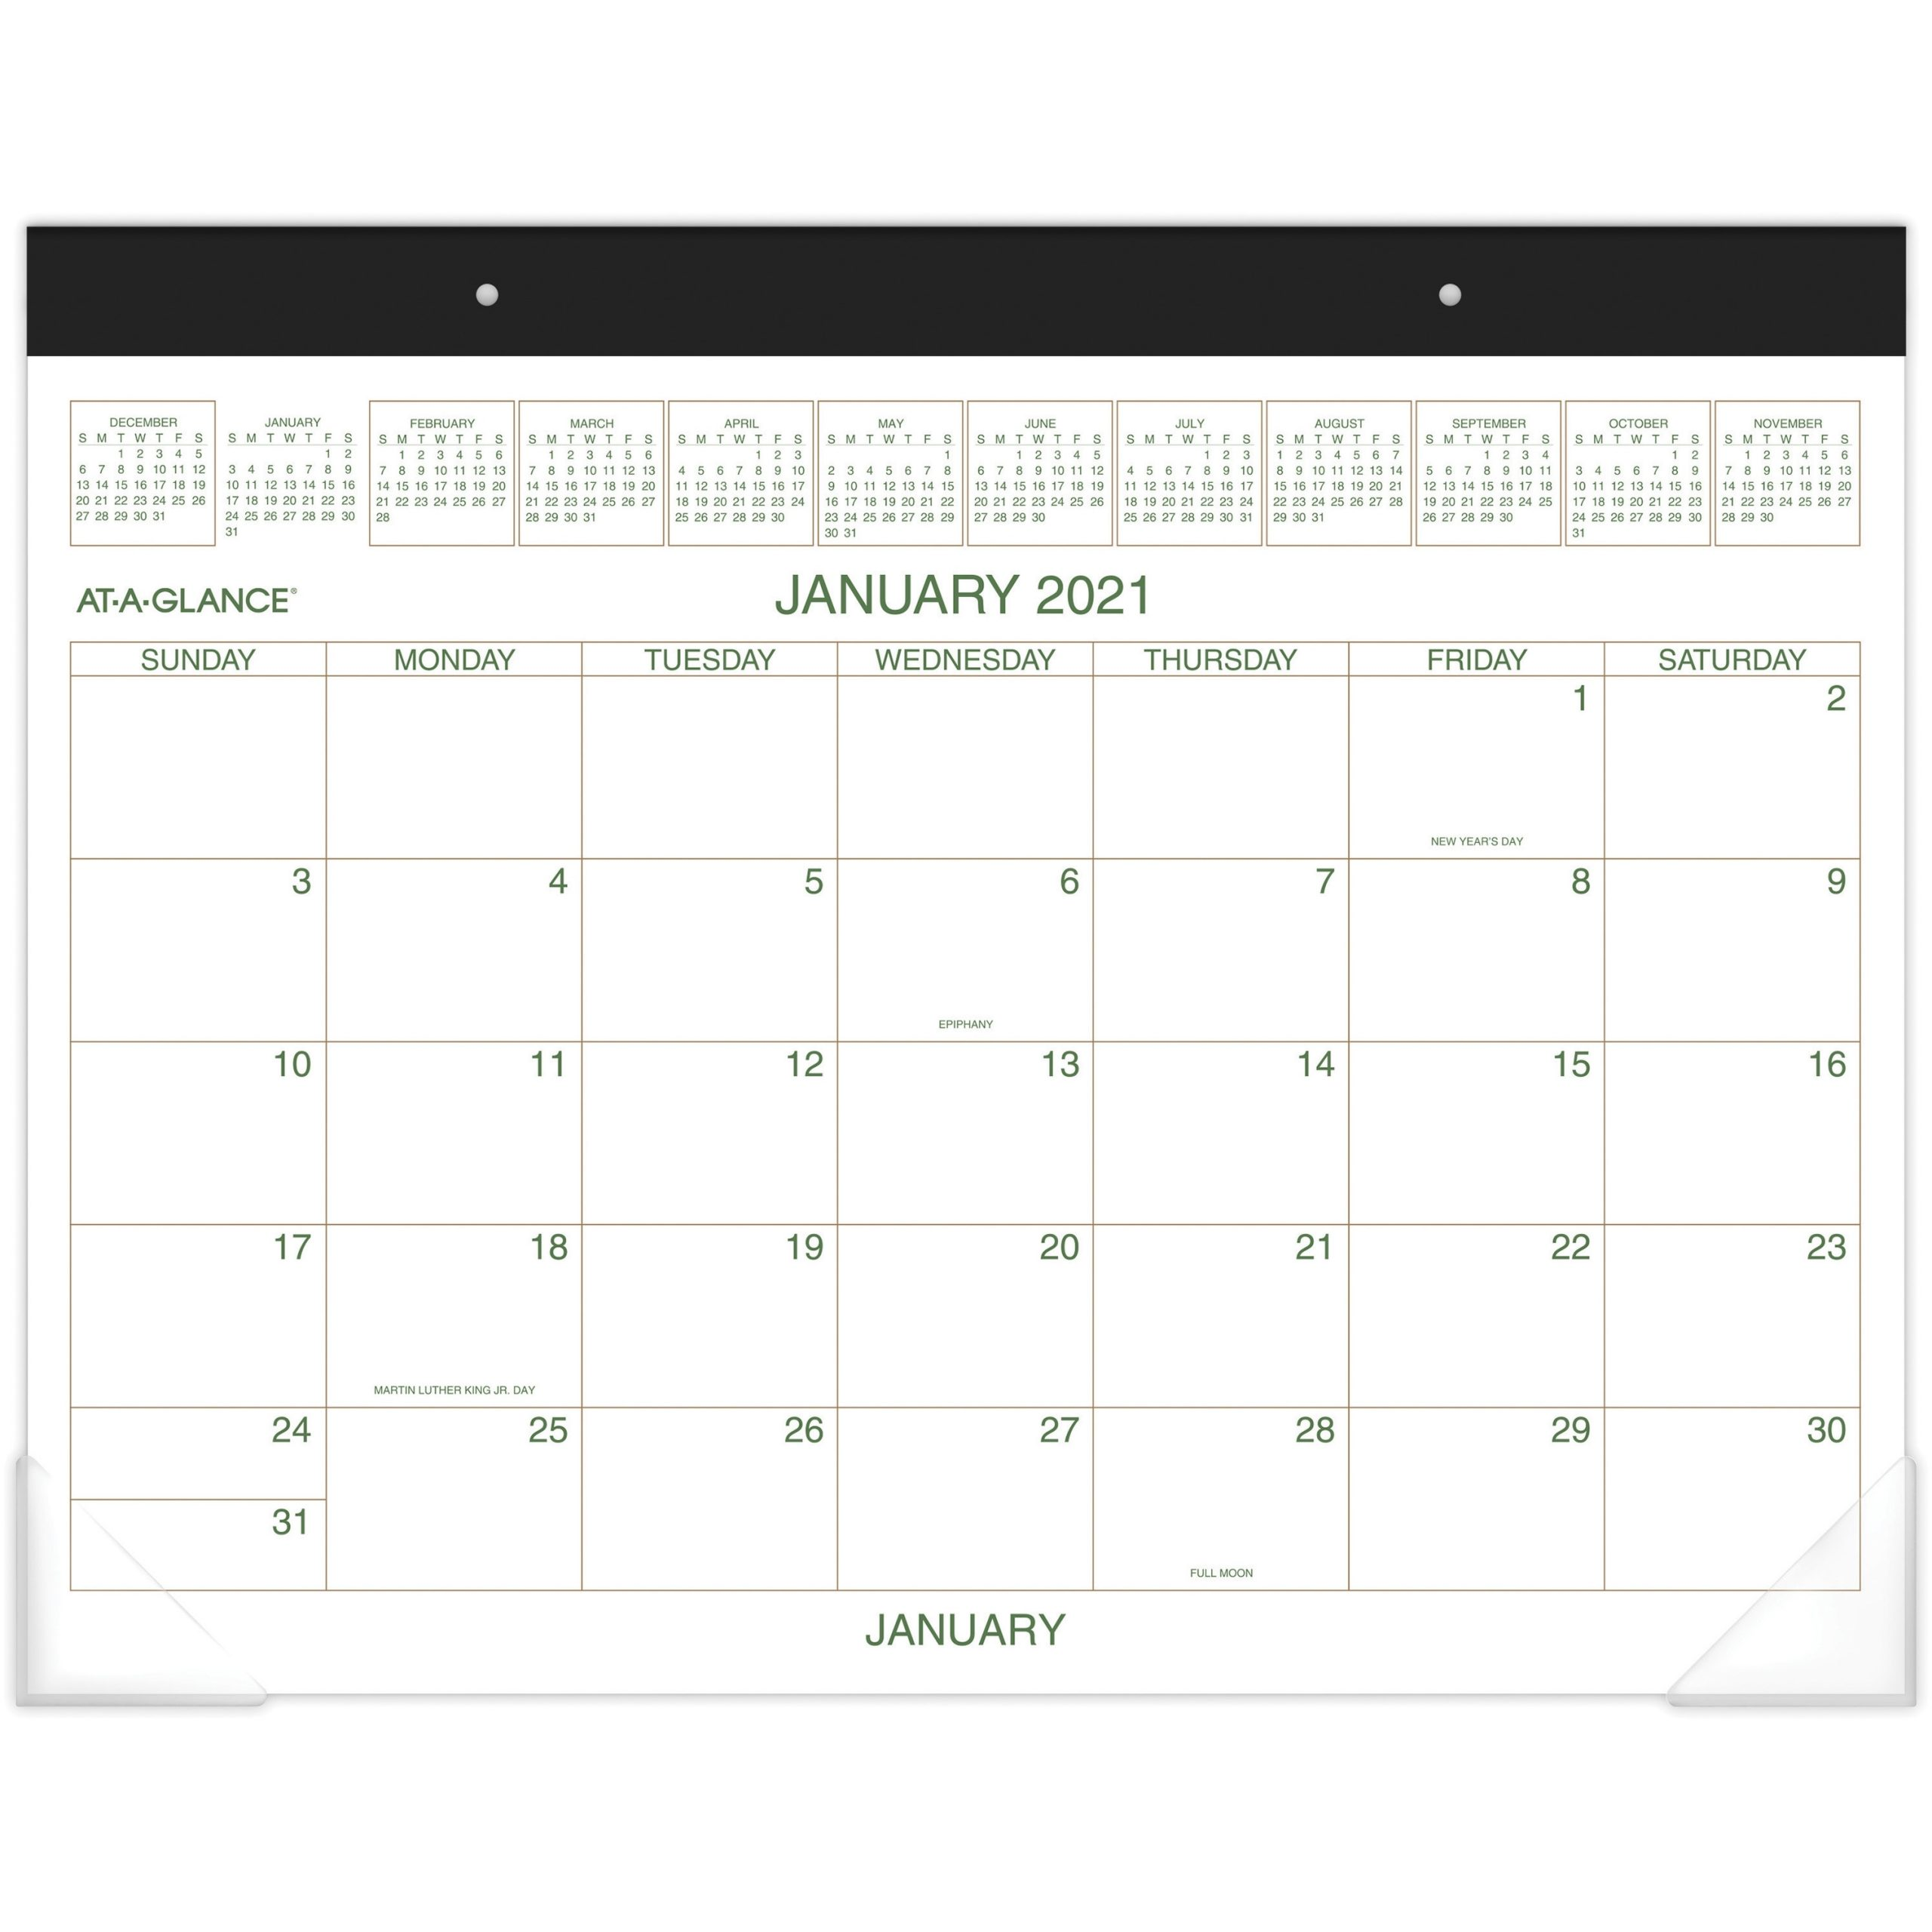 "At-A-Glance Two-Color Monthly Desk Pad - Julian Dates - Monthly - 1 Year -  January 2021 Till December 2021 - 1 Month Single Page Layout - 22"" X 17"""